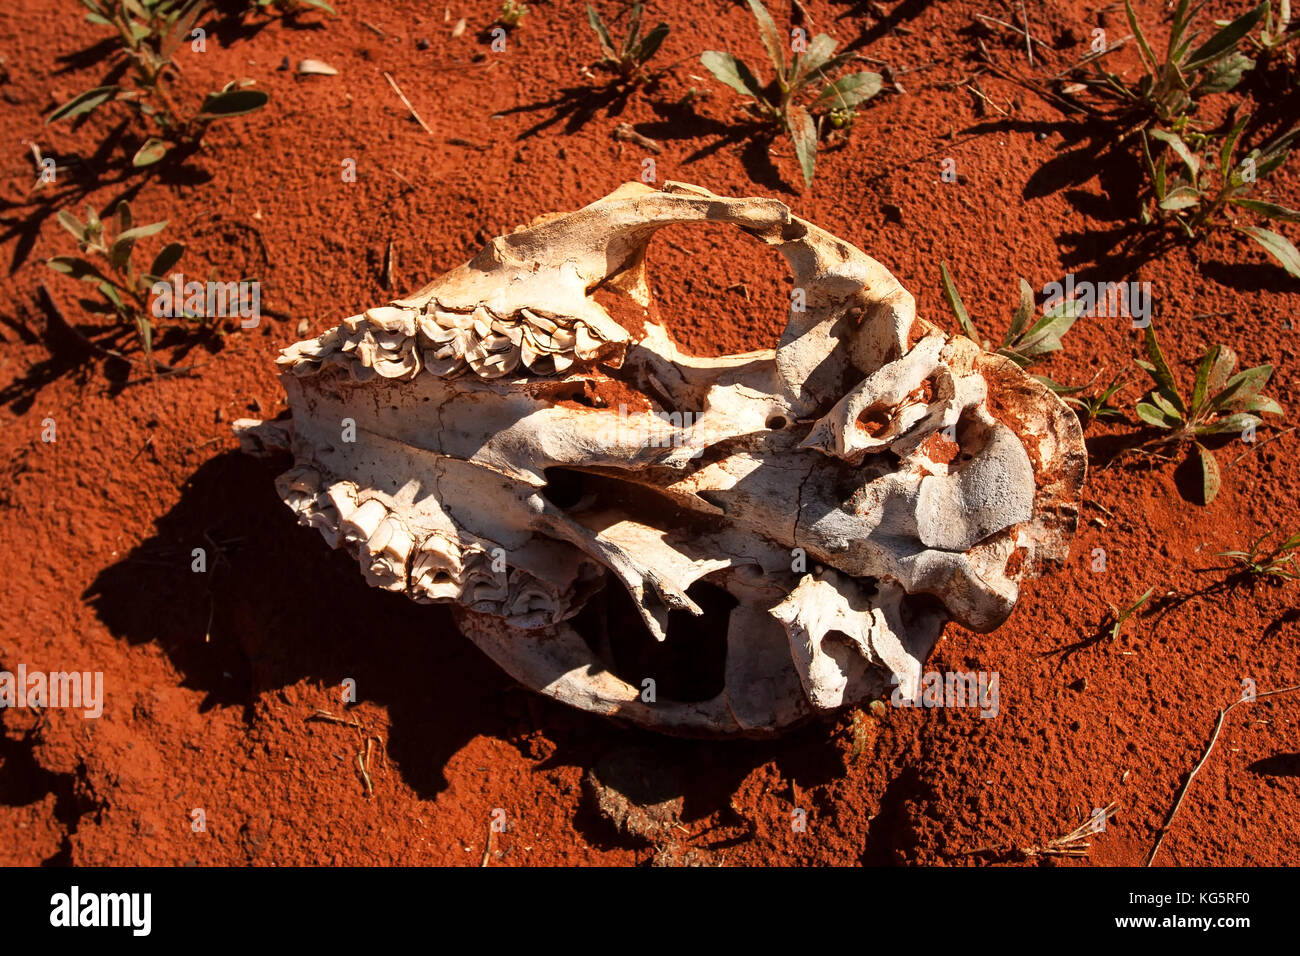 Skull on red sand Australia - Stock Image